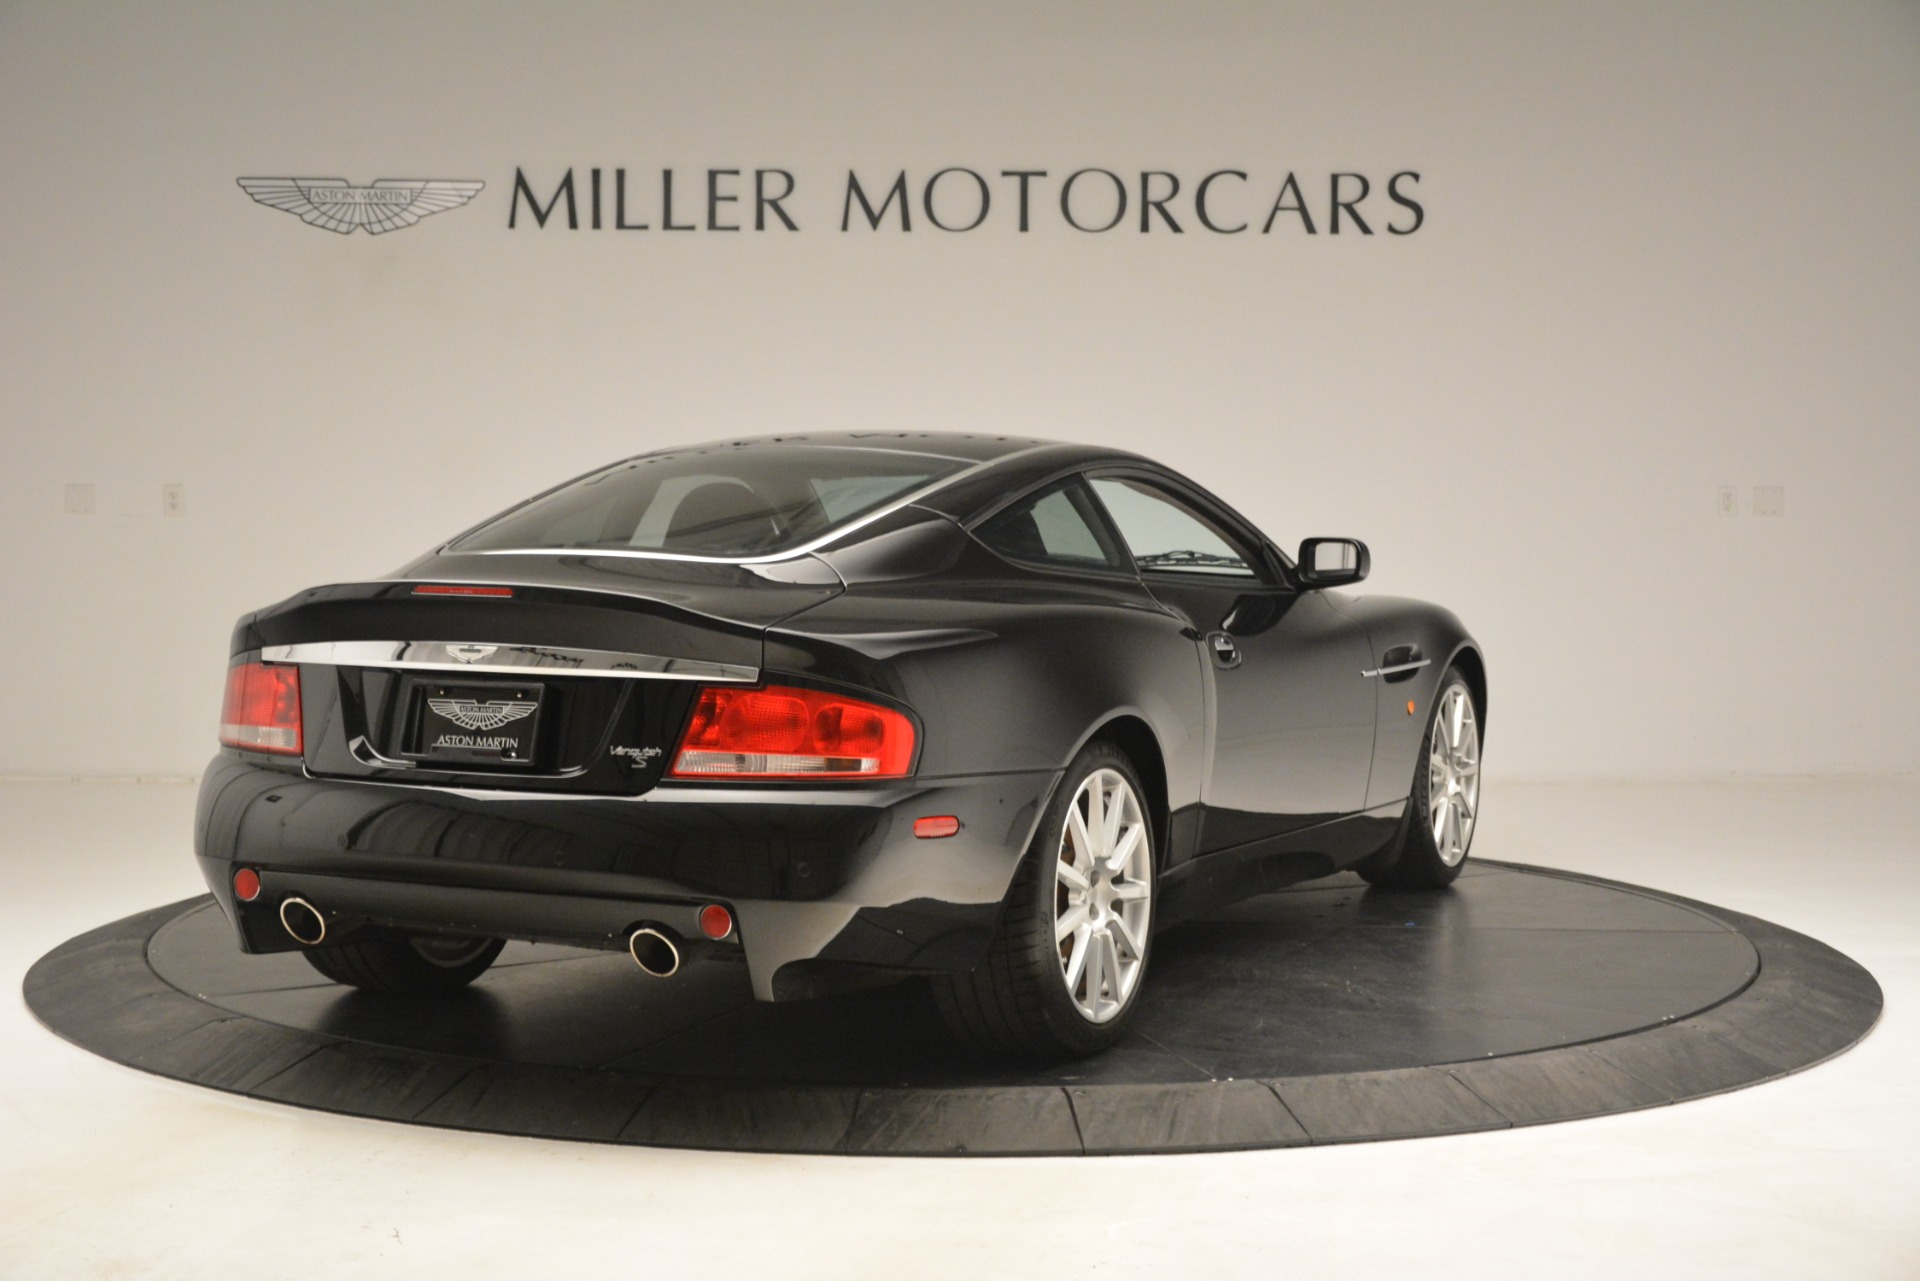 Used 2005 Aston Martin V12 Vanquish S For Sale In Westport, CT 3218_p7